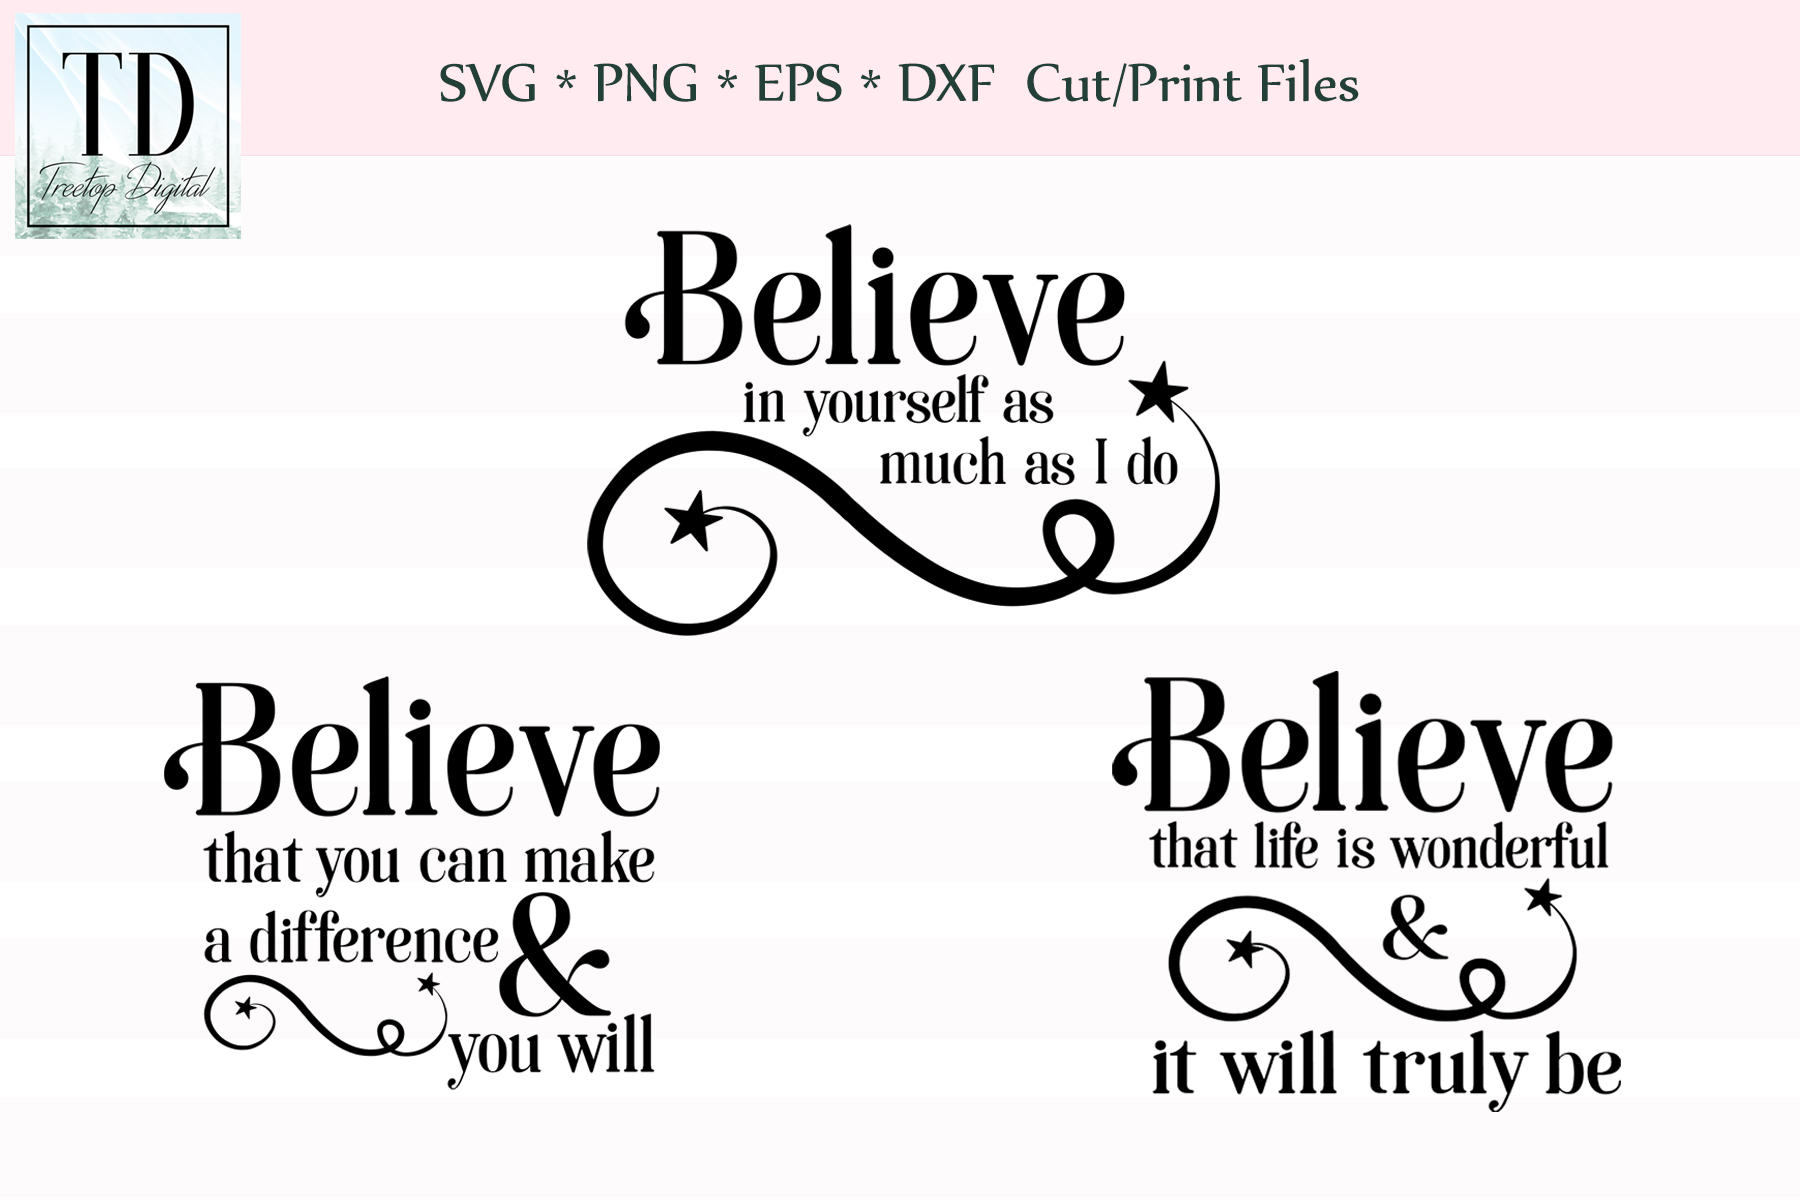 Believe Inspirational Quotes - An SVG Bundle example image 1